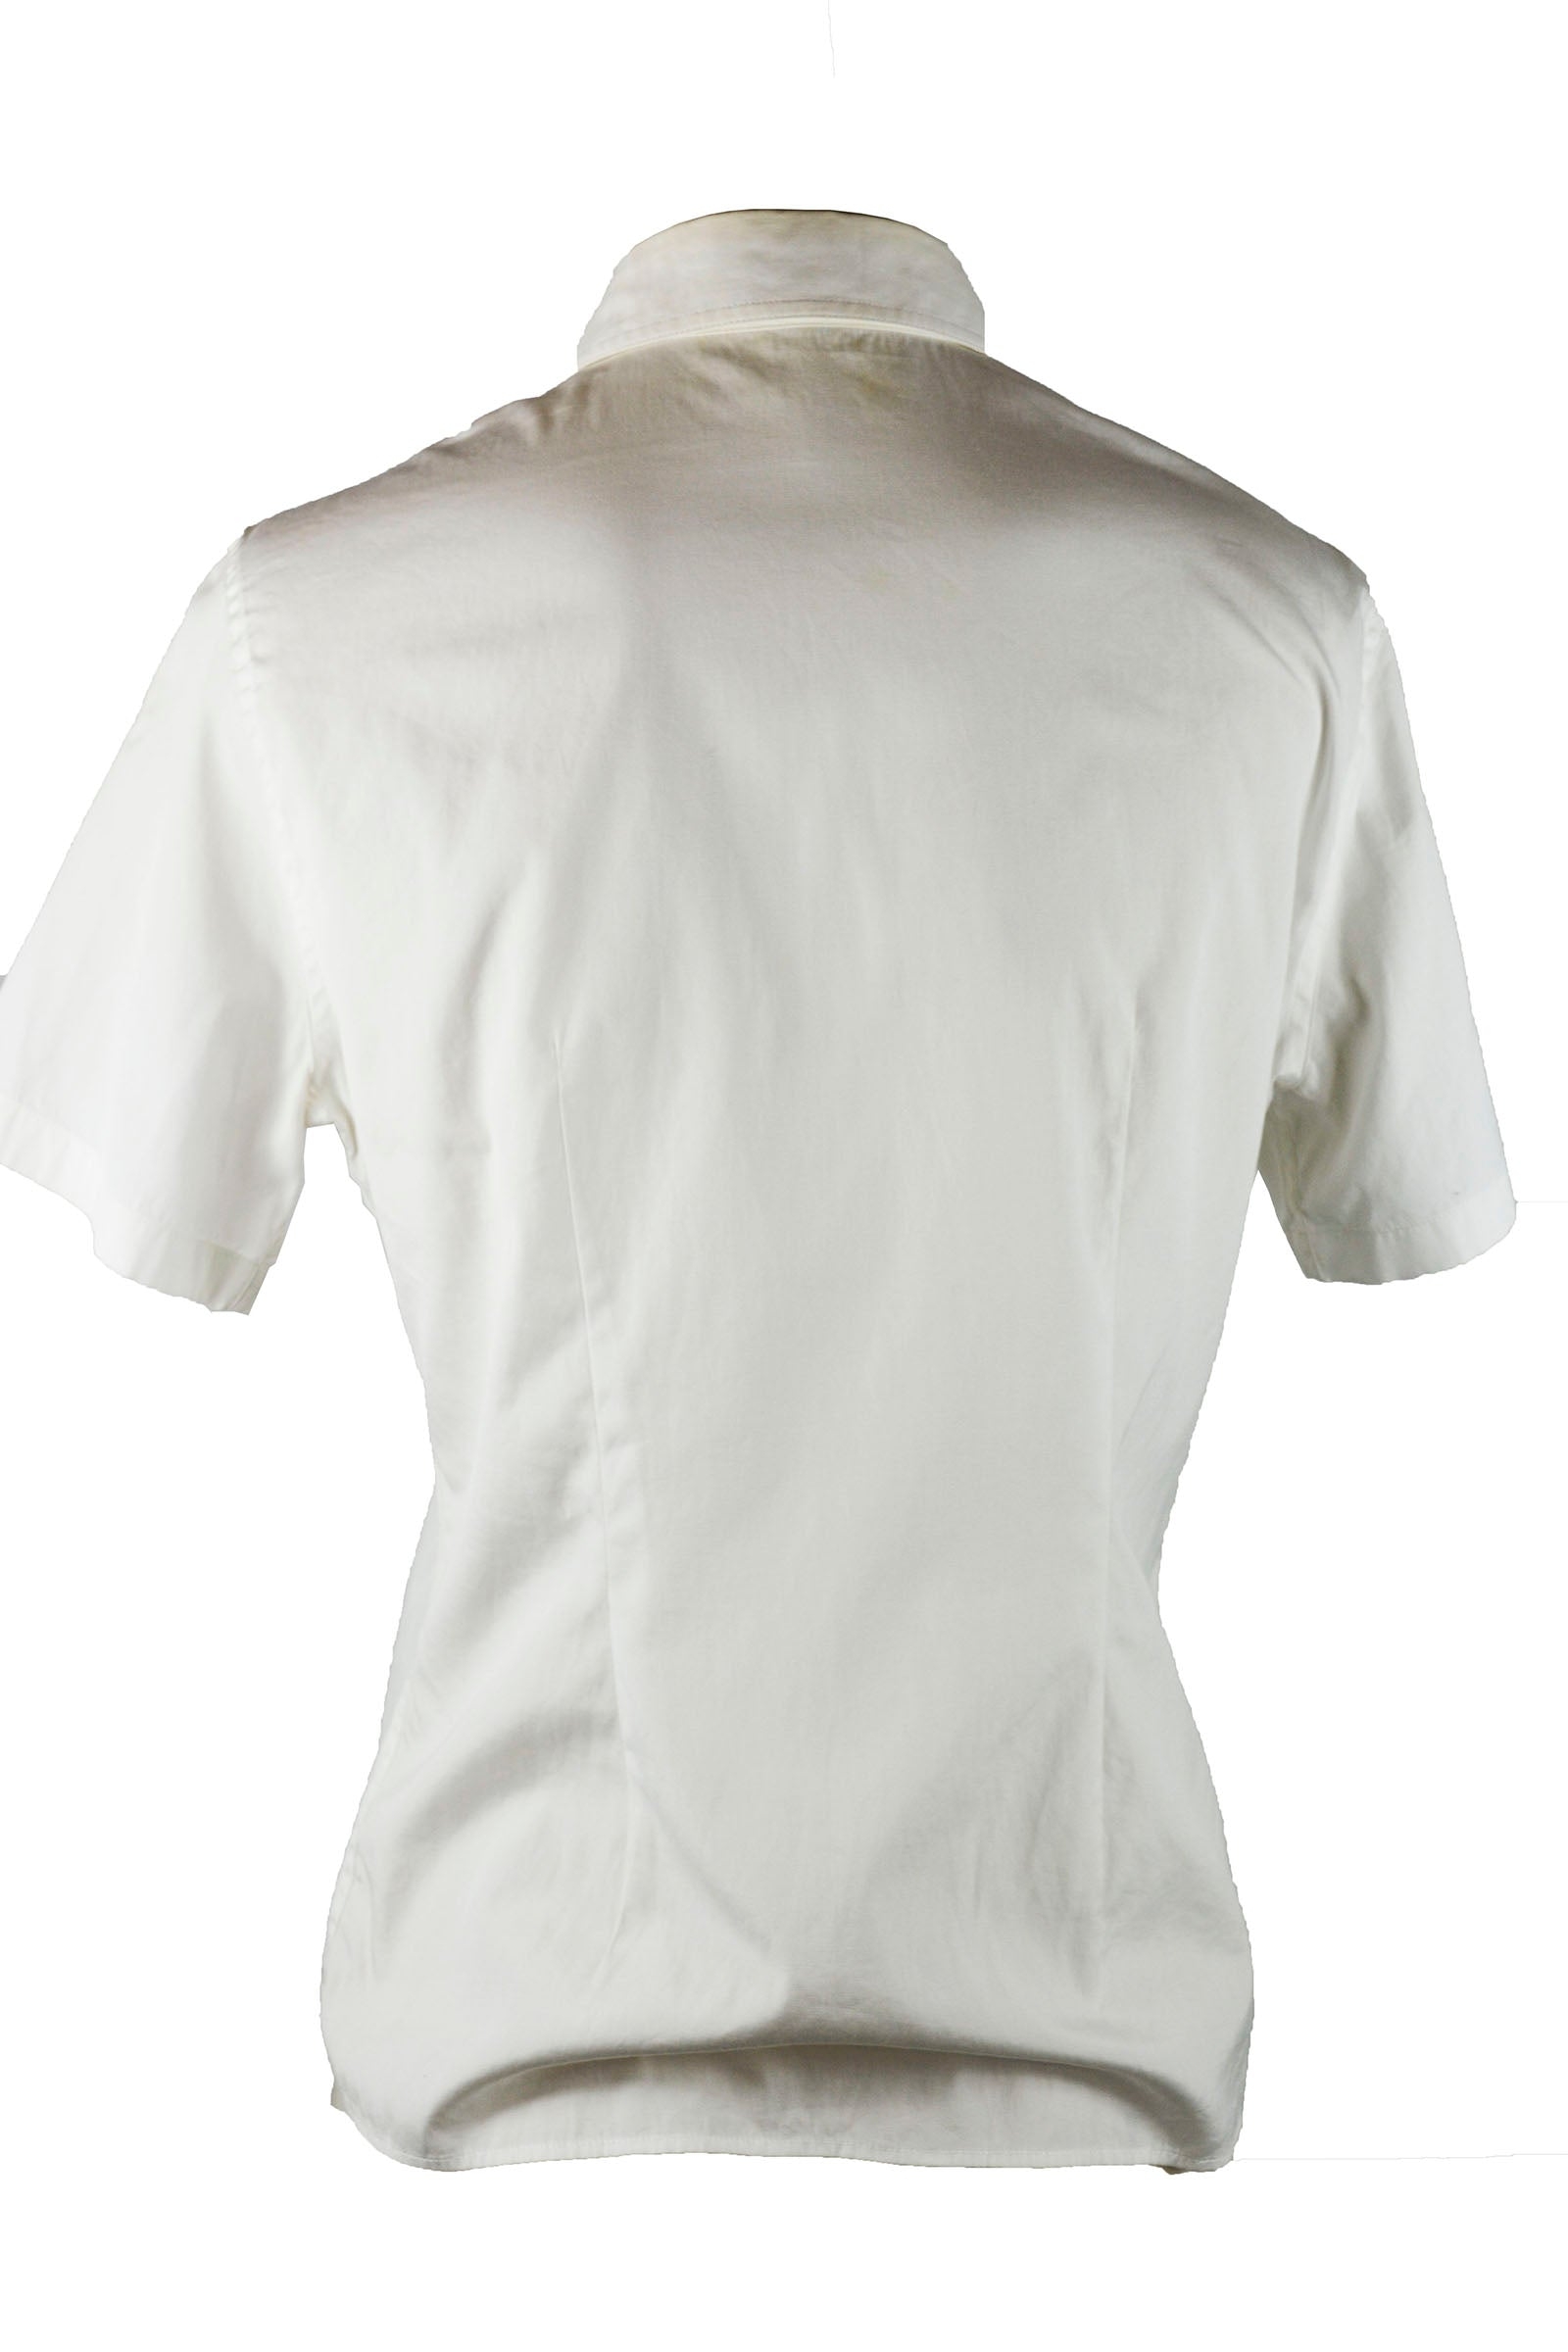 Burberry White Short Sleeved Shirt with Embroidered Pocket Size 40 (EU)